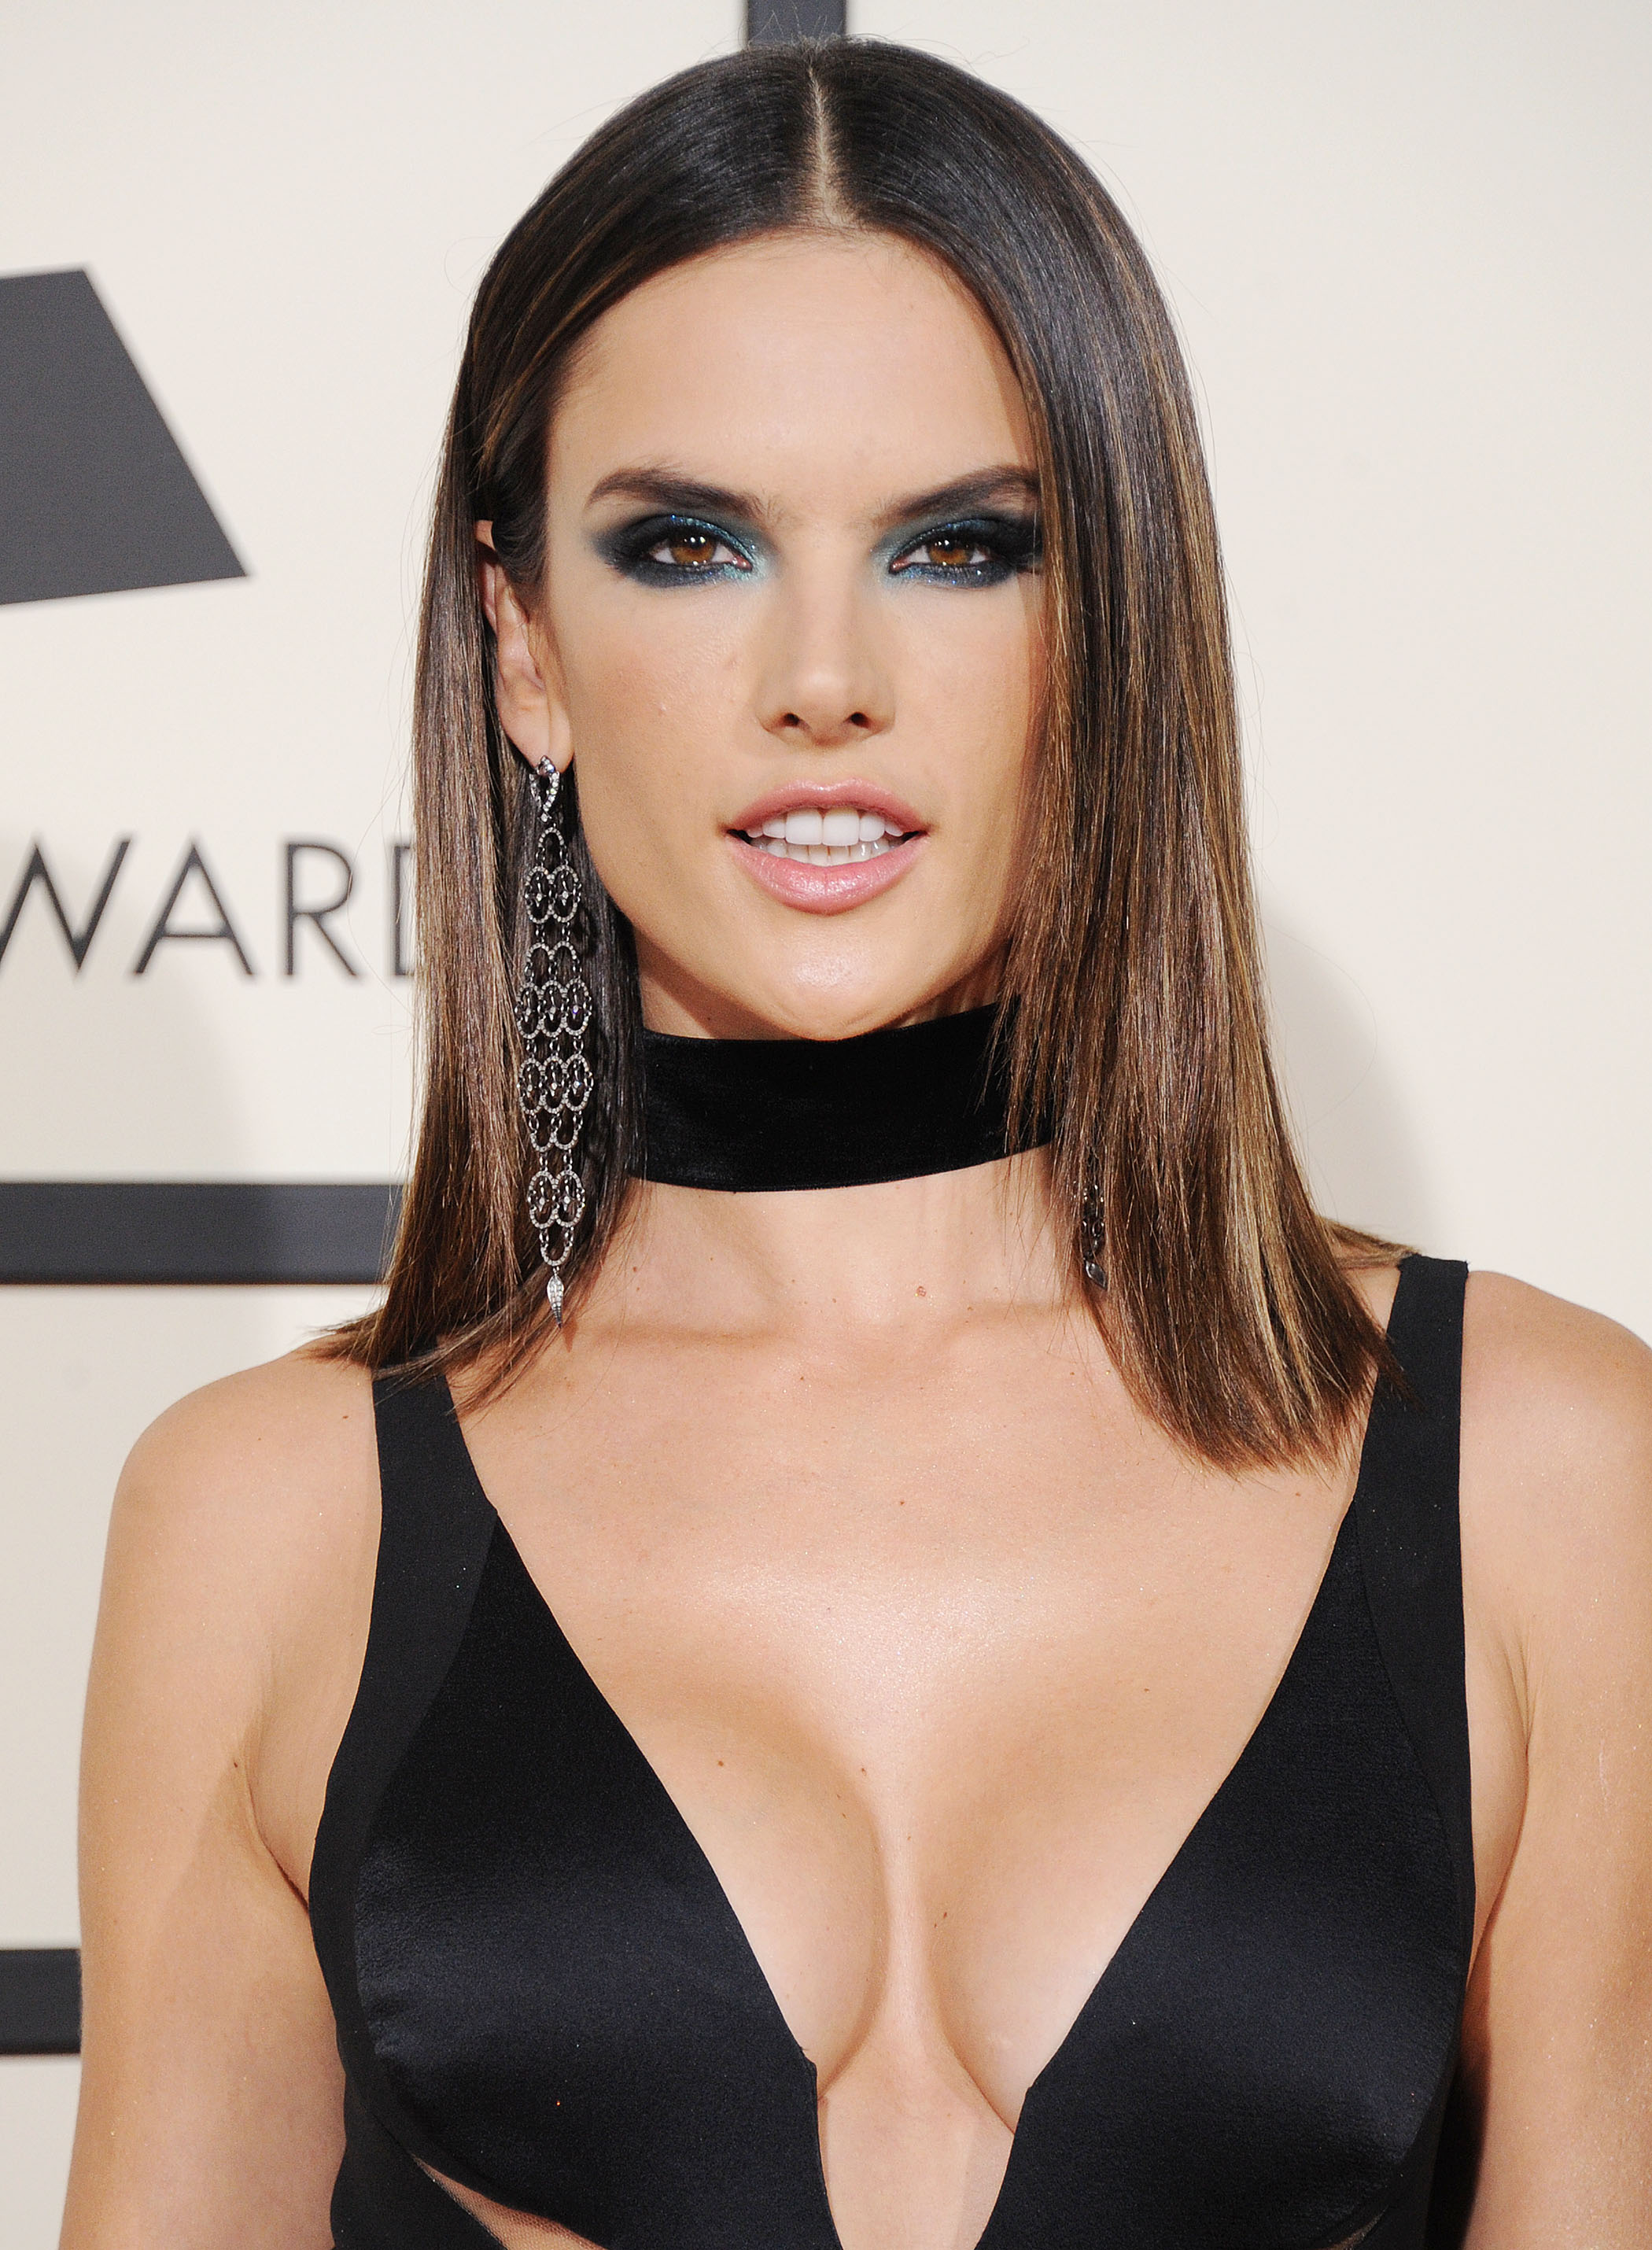 Pictured: Alessandra Ambrosio Mandatory Credit © Gilbert Flores /Broadimage 2016 Grammy Awards 2/15/16, Los Angeles, California, United States of America Reference: 021516_GFLA_BDG_GA_251 Broadimage Newswire Los Angeles 1+ (310) 301-1027 New York 1+ (646) 827-9134 sales@broadimage.com http://www.broadimage.com